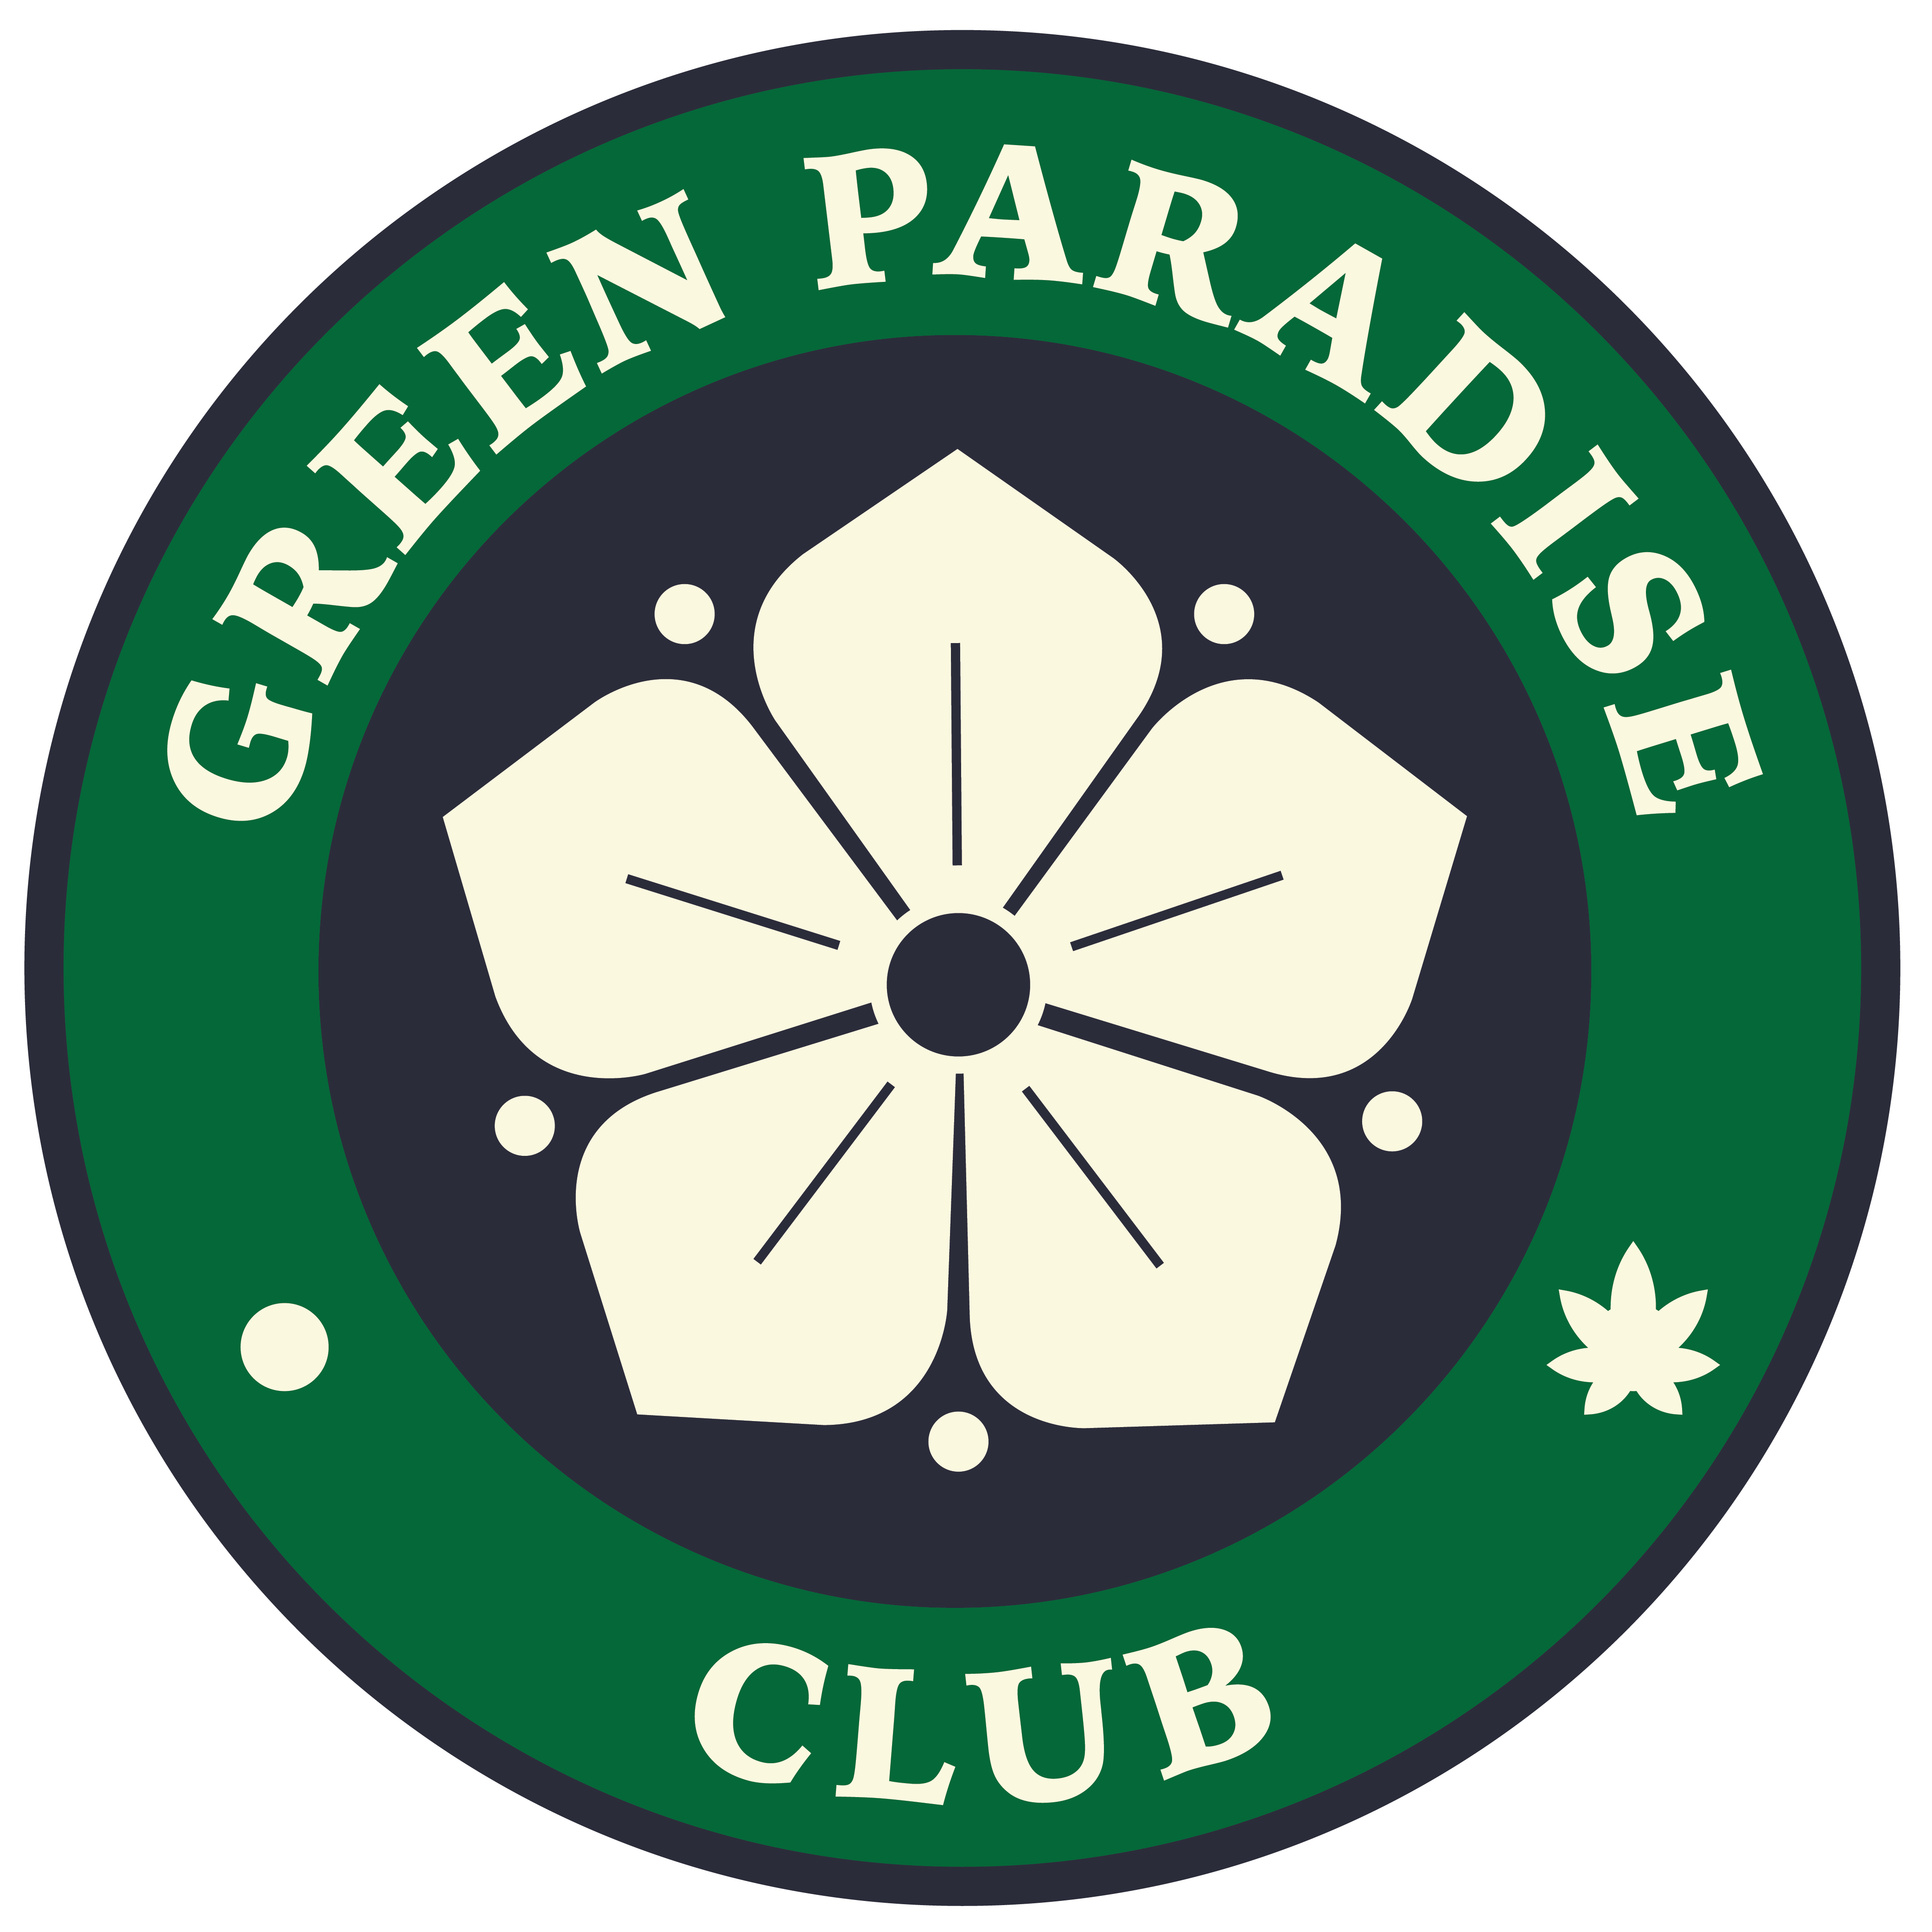 Green Paradise Club Logo